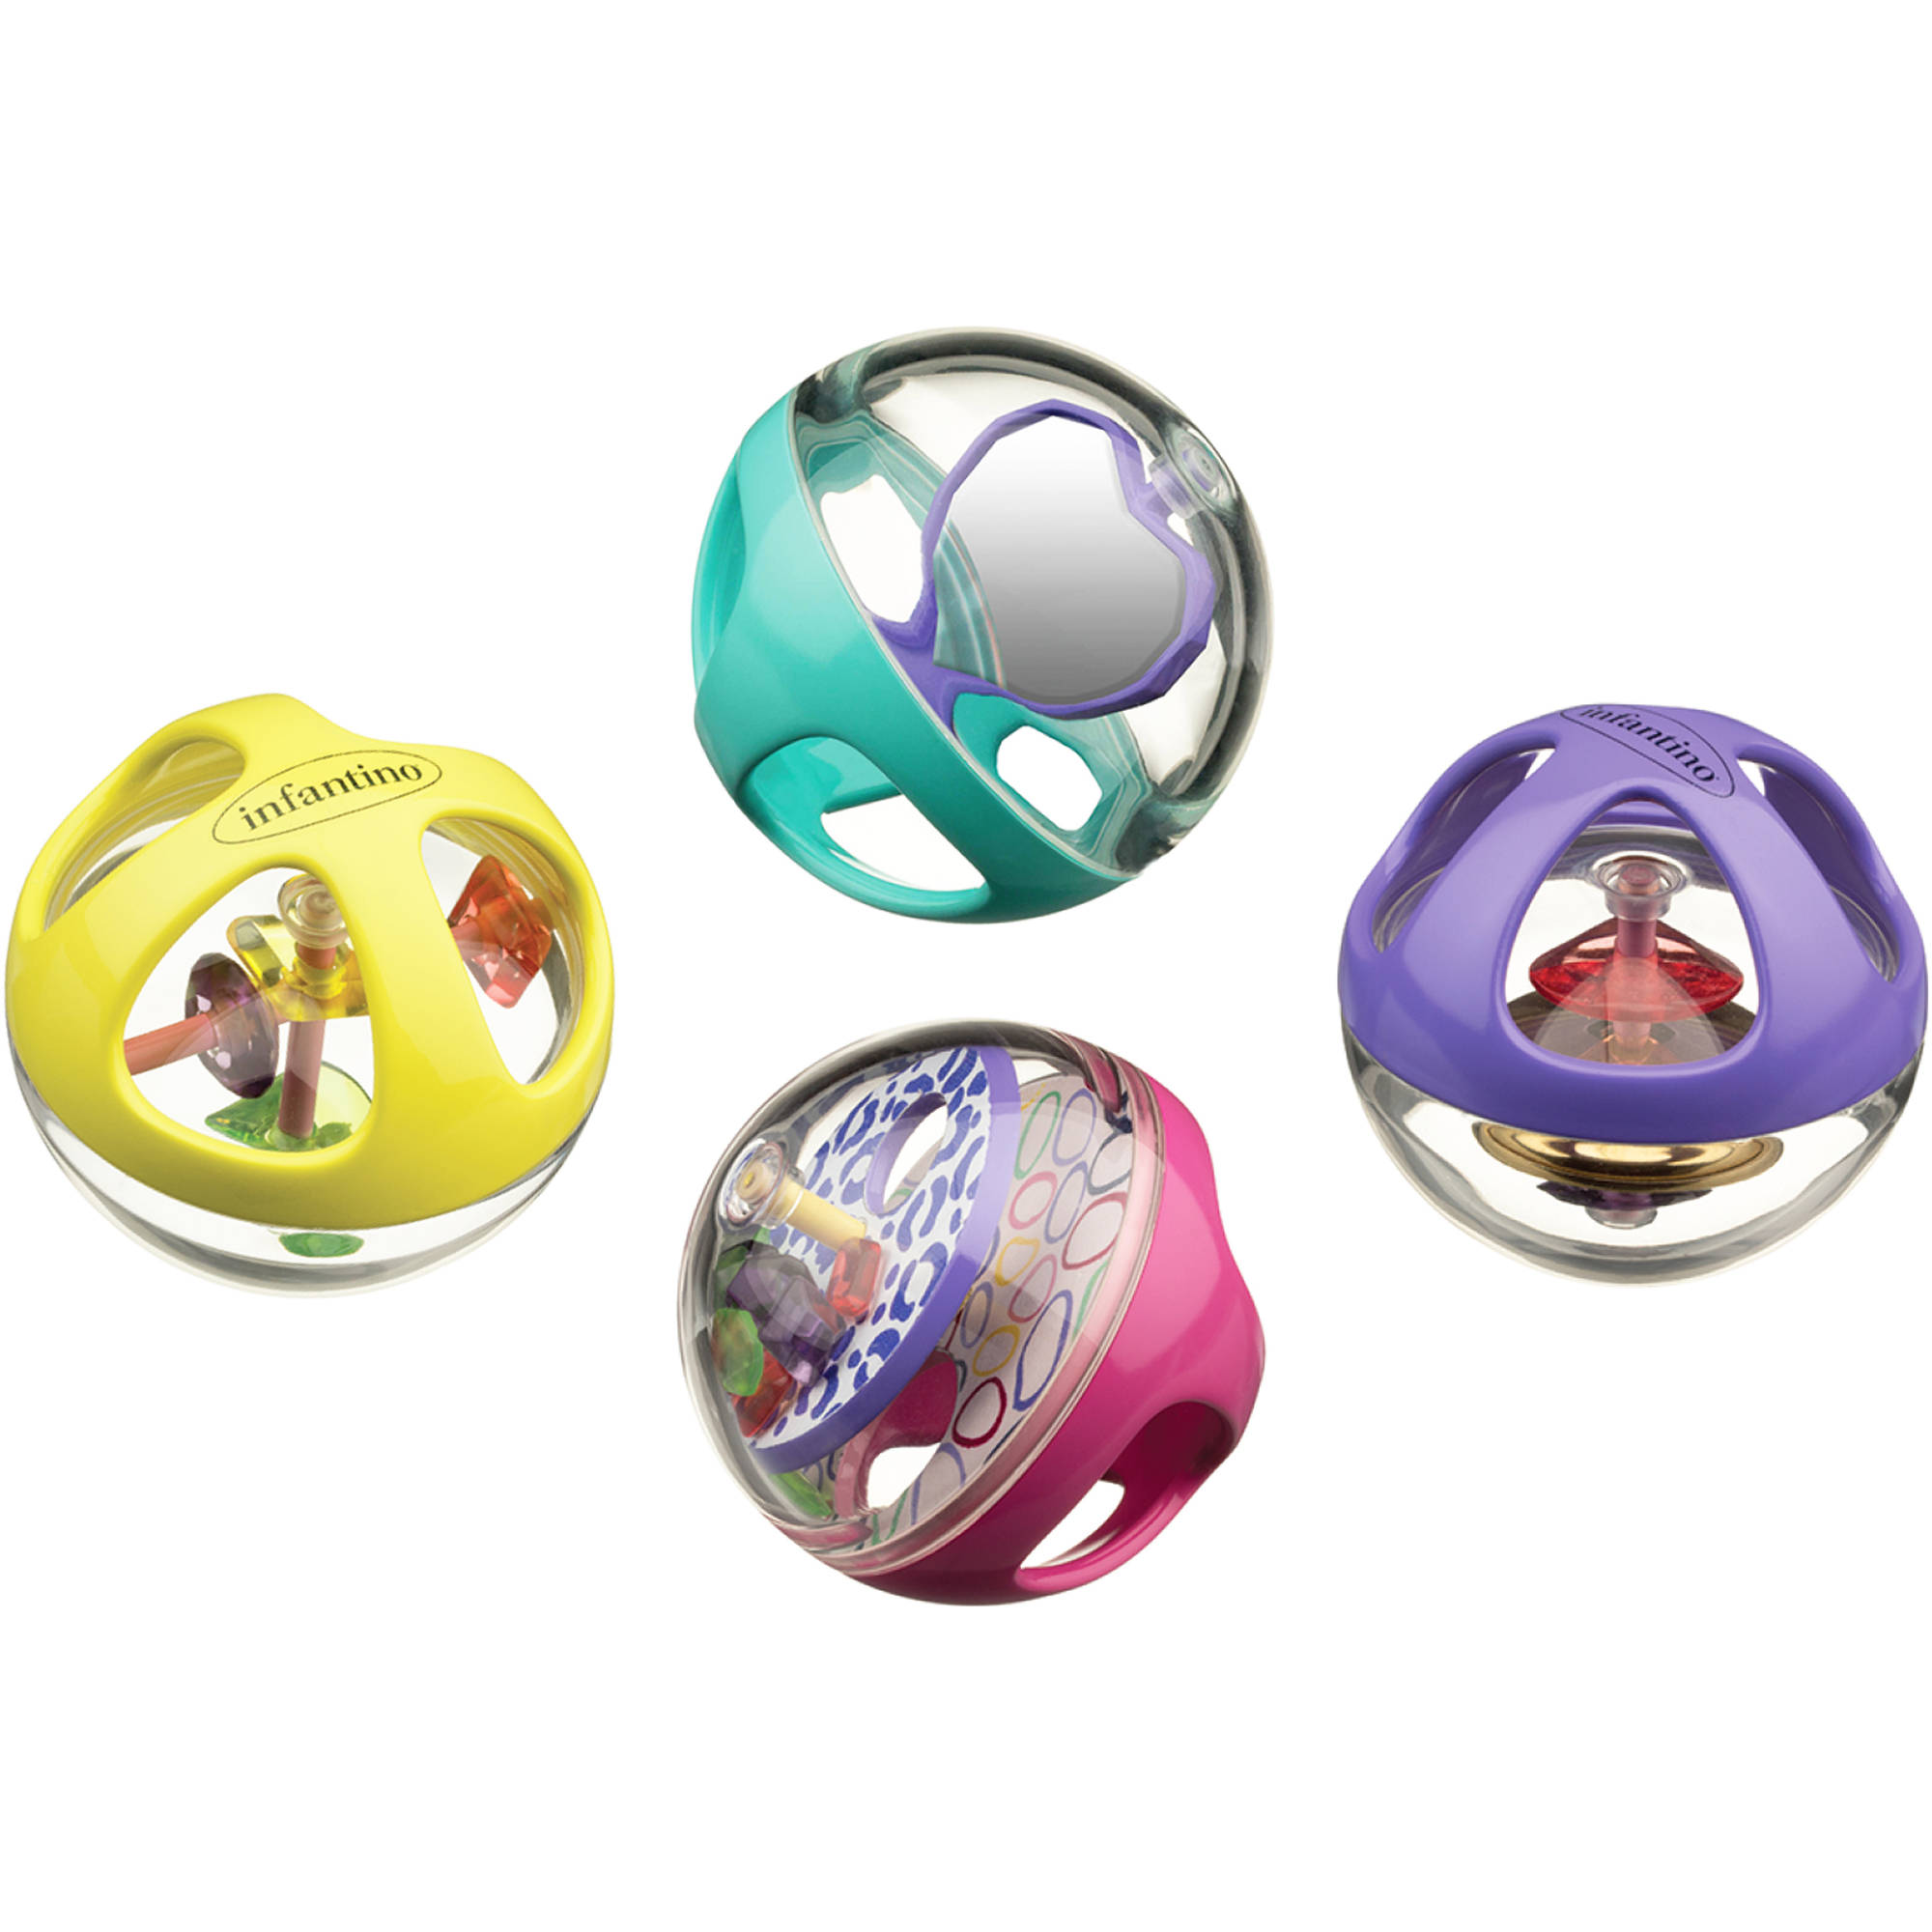 Infantino Sensory Jinglin' Gems Activity Balls